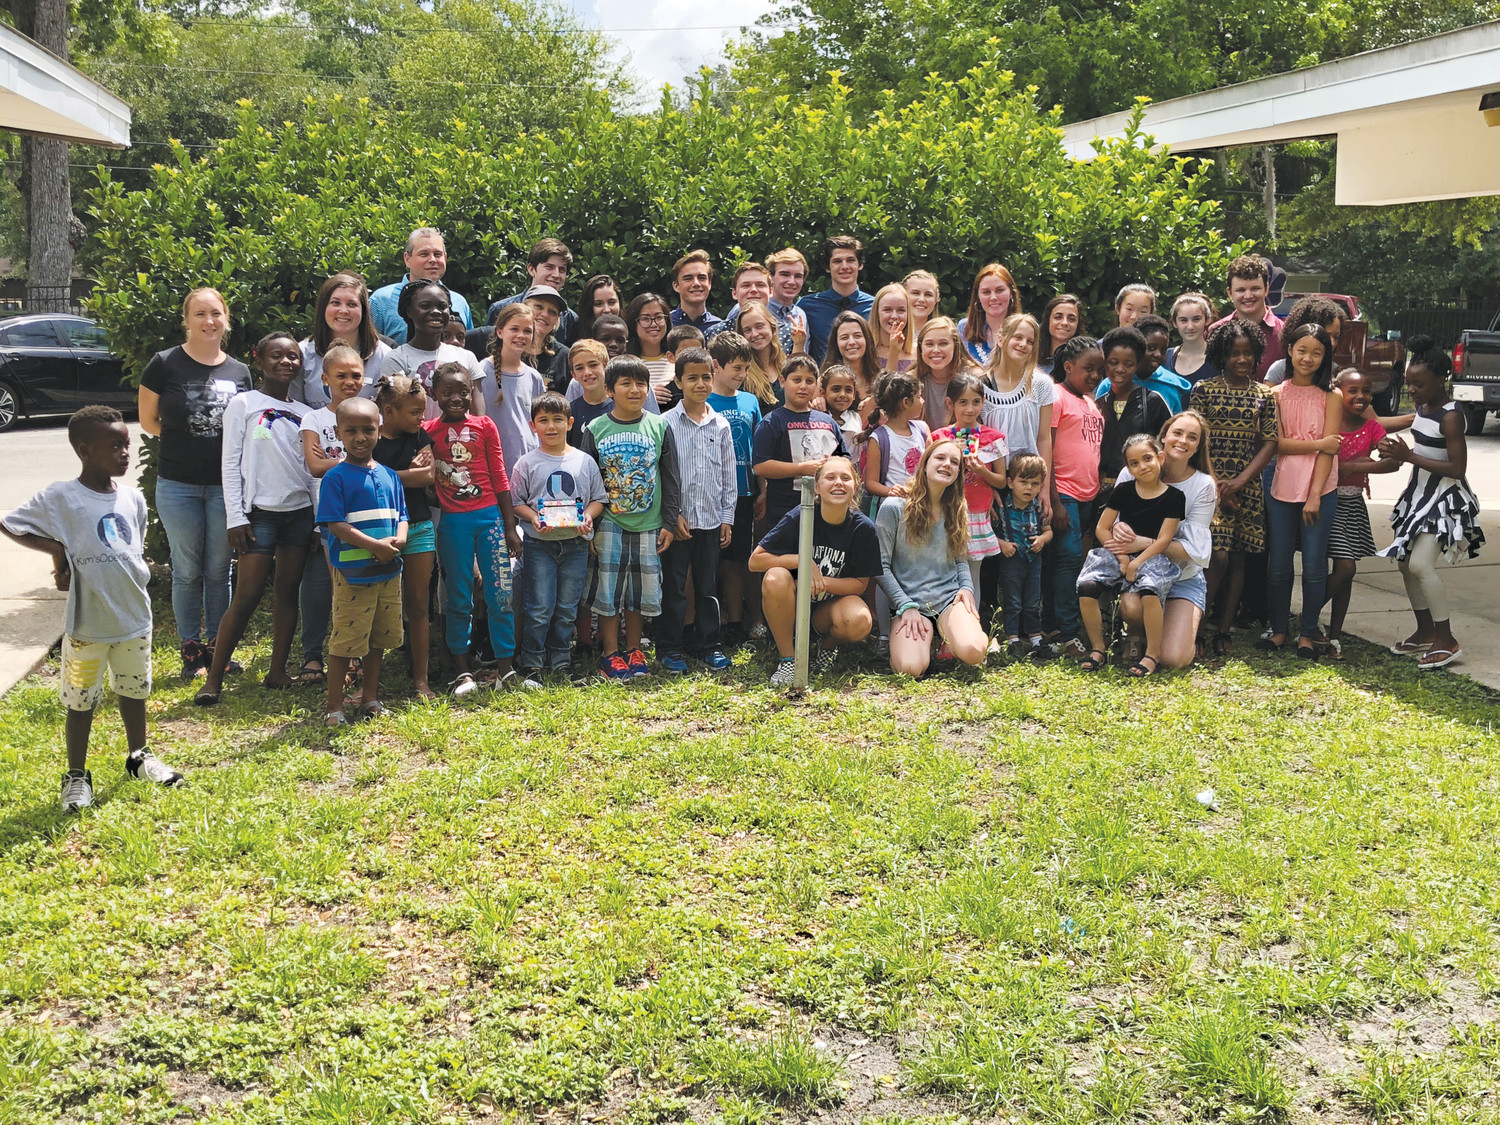 Refugee children pose with JaxTHRIVE volunteers at the nonprofit's first graduation celebration May 19.